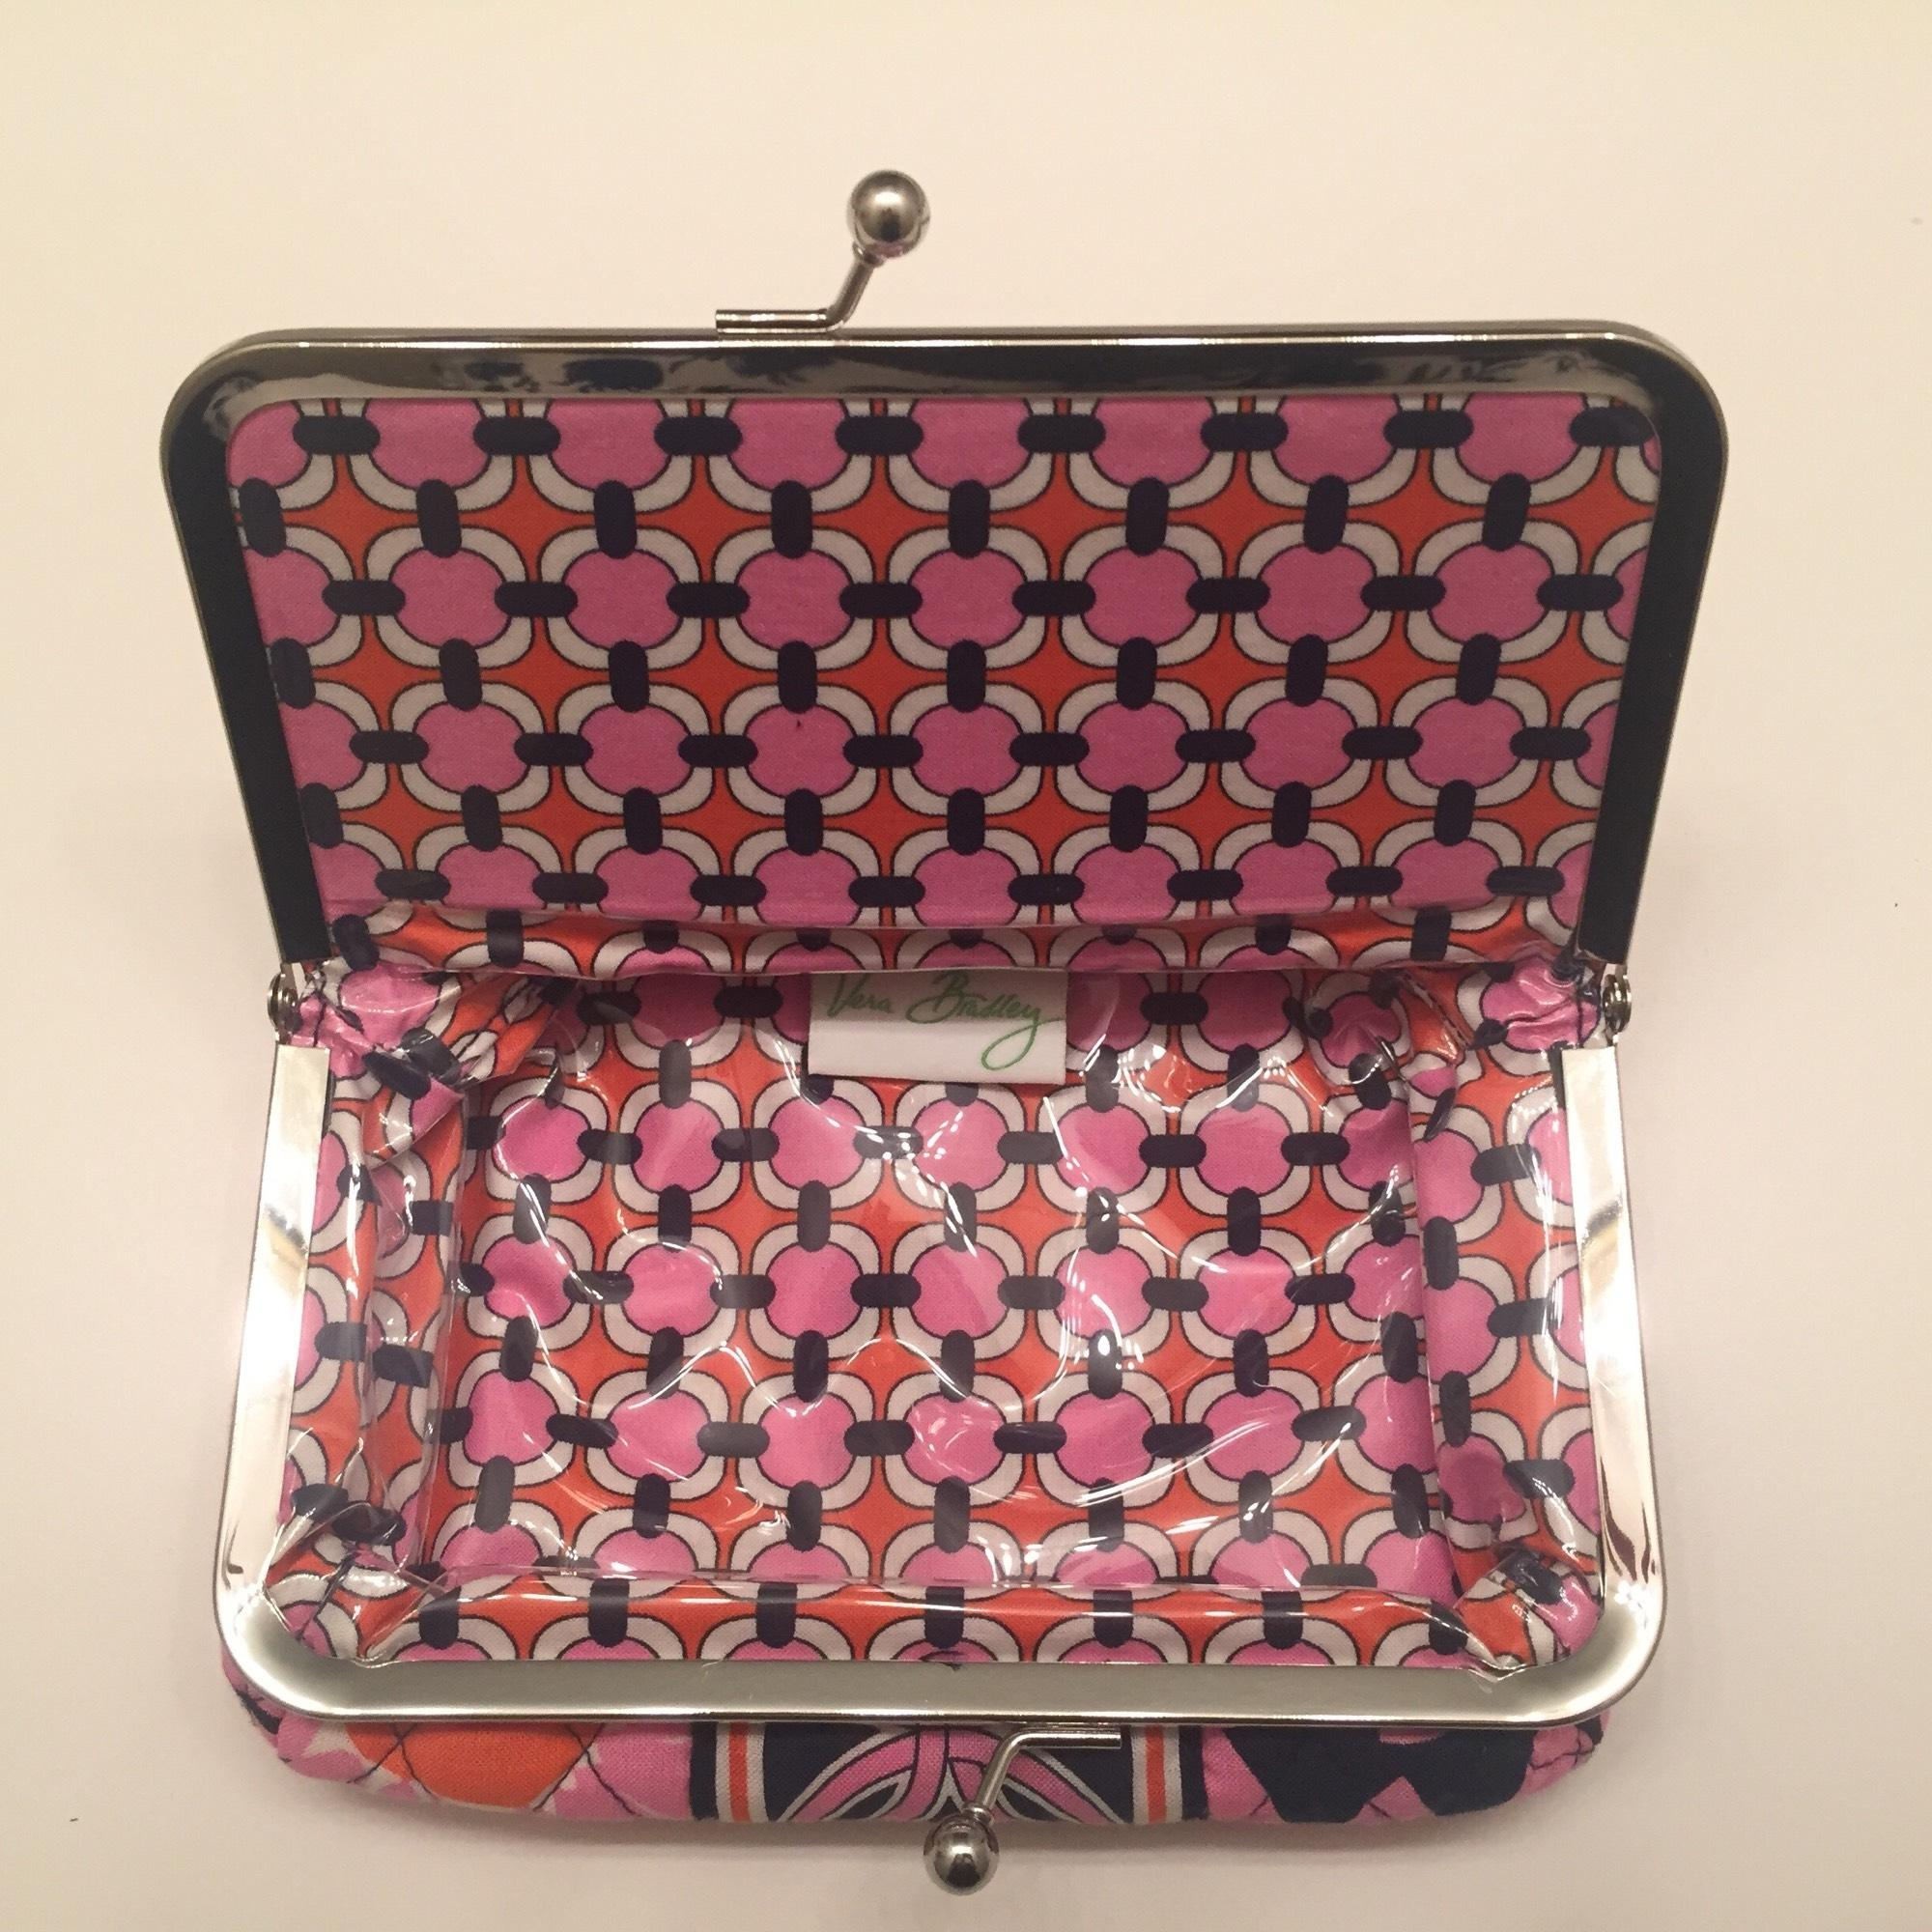 fc9e0a4fd83b Vera bradley pink kiss and make up cosmetic bag tradesy vera bradley  cosmetic bag jpg 2000x2000